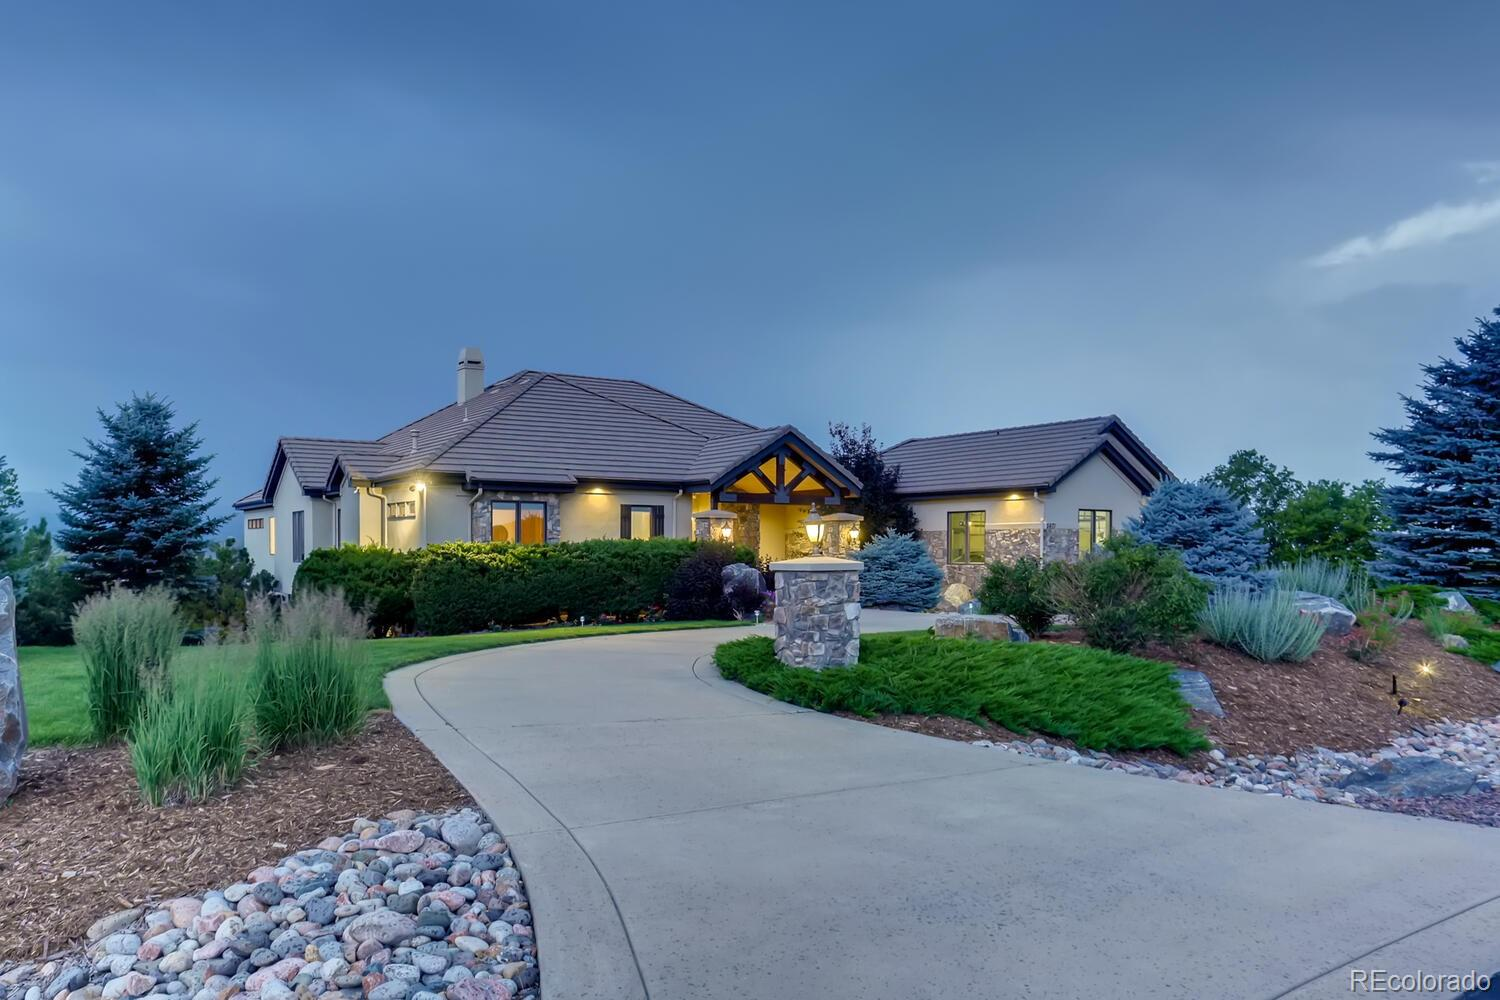 """***Before you read any of this... Watch this video    https://vimeo.com/572363865       and it will tell you all you need to know.***   Views, views and more views.... Here at Cherokee Ridge Estates.  5671 Aspen Leaf resides at the pinnacle of this sought-after community. From the beginning, this property was designed to capitalize on all of Colorado's natural beauty.  There are spectacular views from almost every room, showcasing the front range from Pikes Peak to the flatirons.  From Summer BBQ and S'mores on the deck to cuddling up to an amazing fire gazing over the snow-covered terrain you will wake up everyday pinching yourself asking """"Do we really live here?""""  Come find yourself in the serenity you have always been looking for.  You will be surrounded by top notch finishes including a Wolf Range, Steam Showers, updated kitchen and attention to detail throughout the home. Perfect for entertaining but cozy enough to just stay home with the family for the weekend and turn off your phone.  You will never get bored here... but if you do there are trails, parks within a few minute drive.  As well as all your shopping needs met by Castle Rocks Outdoor mall just 12 minutes south or basic needs just 5 minutes north in Highlands Ranch and then quickly back to heaven.  You have to experience this home and you will understand how much it truly has to offer.  So have your agent book your showing today.  We are excited to share our home with you soon!"""